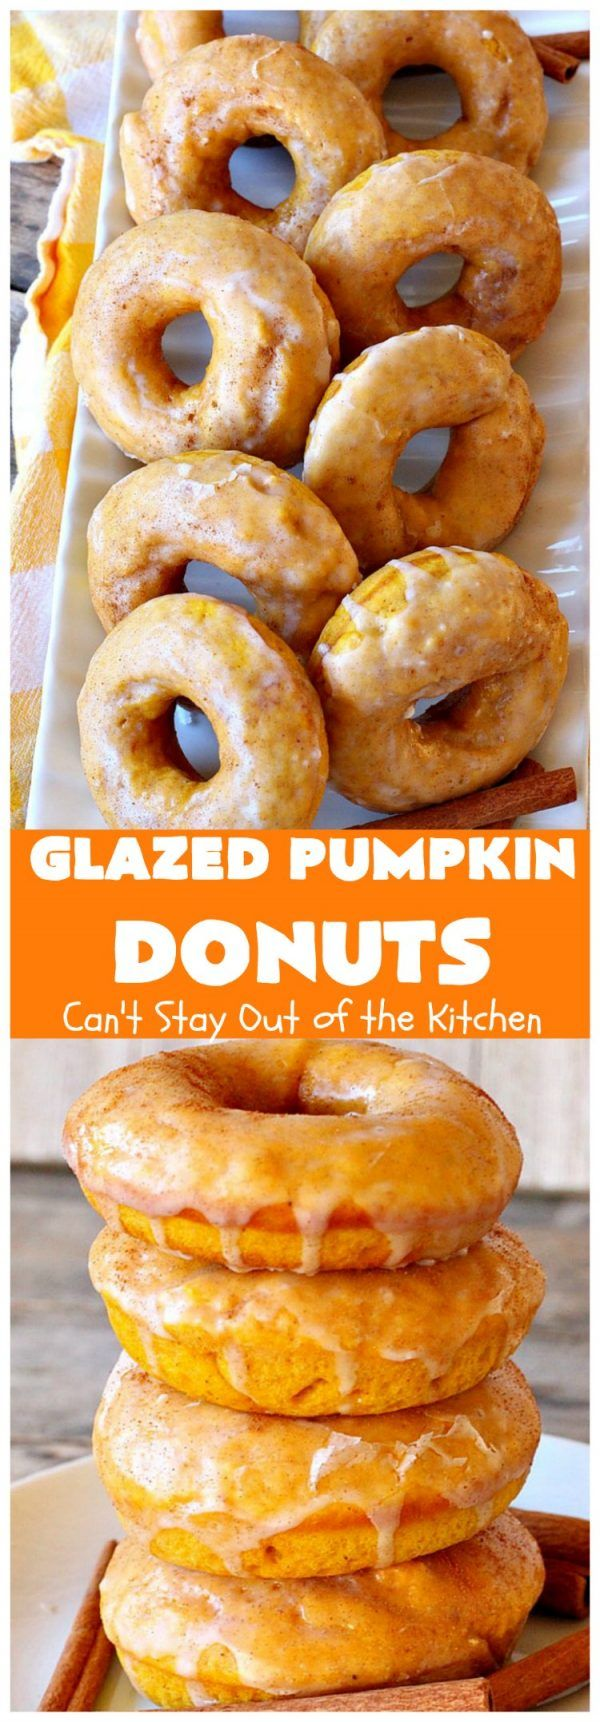 Glazed Pumpkin Donuts Glazed Pumpkin Donuts | Can't Stay Out of the Kitchen | These will knock your socks off! They're filled with & pumpkin pie spice. Then they're glazed with vanilla icing & sprinkled with Terrific for & winter & company.